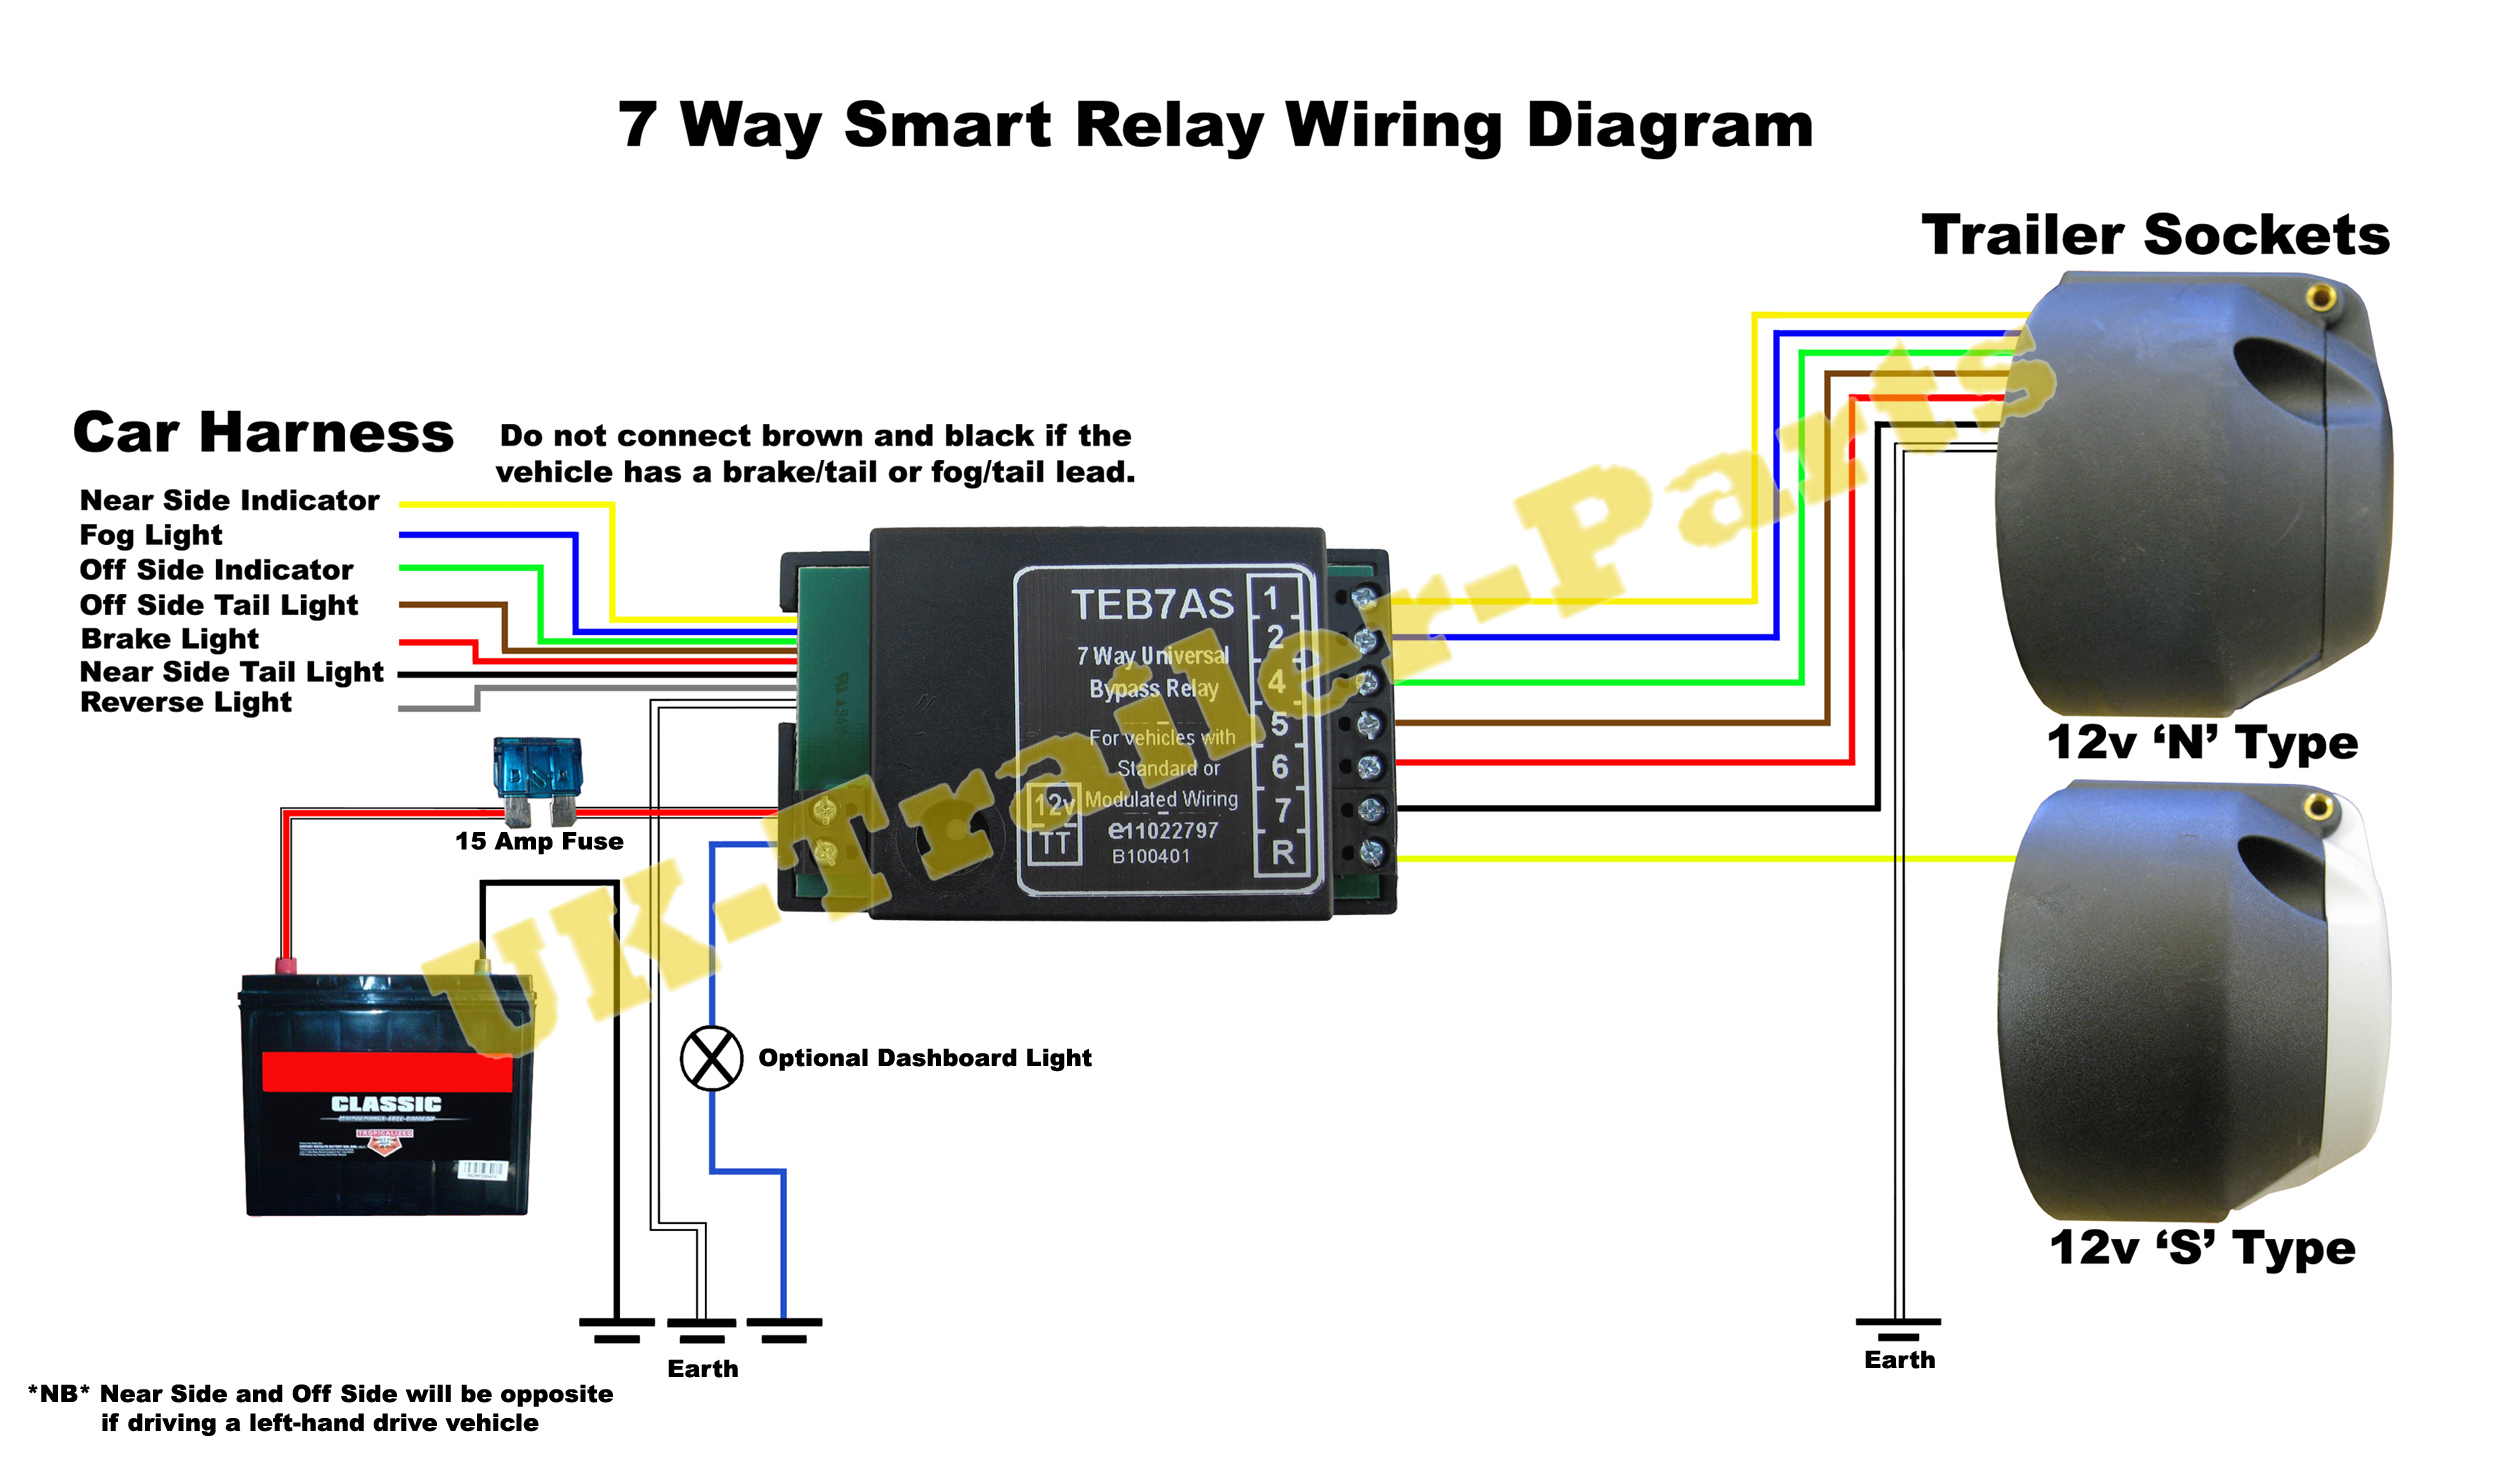 smart relay wiring diagram2 7 way universal bypass relay wiring diagram uk trailer parts vauxhall insignia towbar wiring diagram at webbmarketing.co